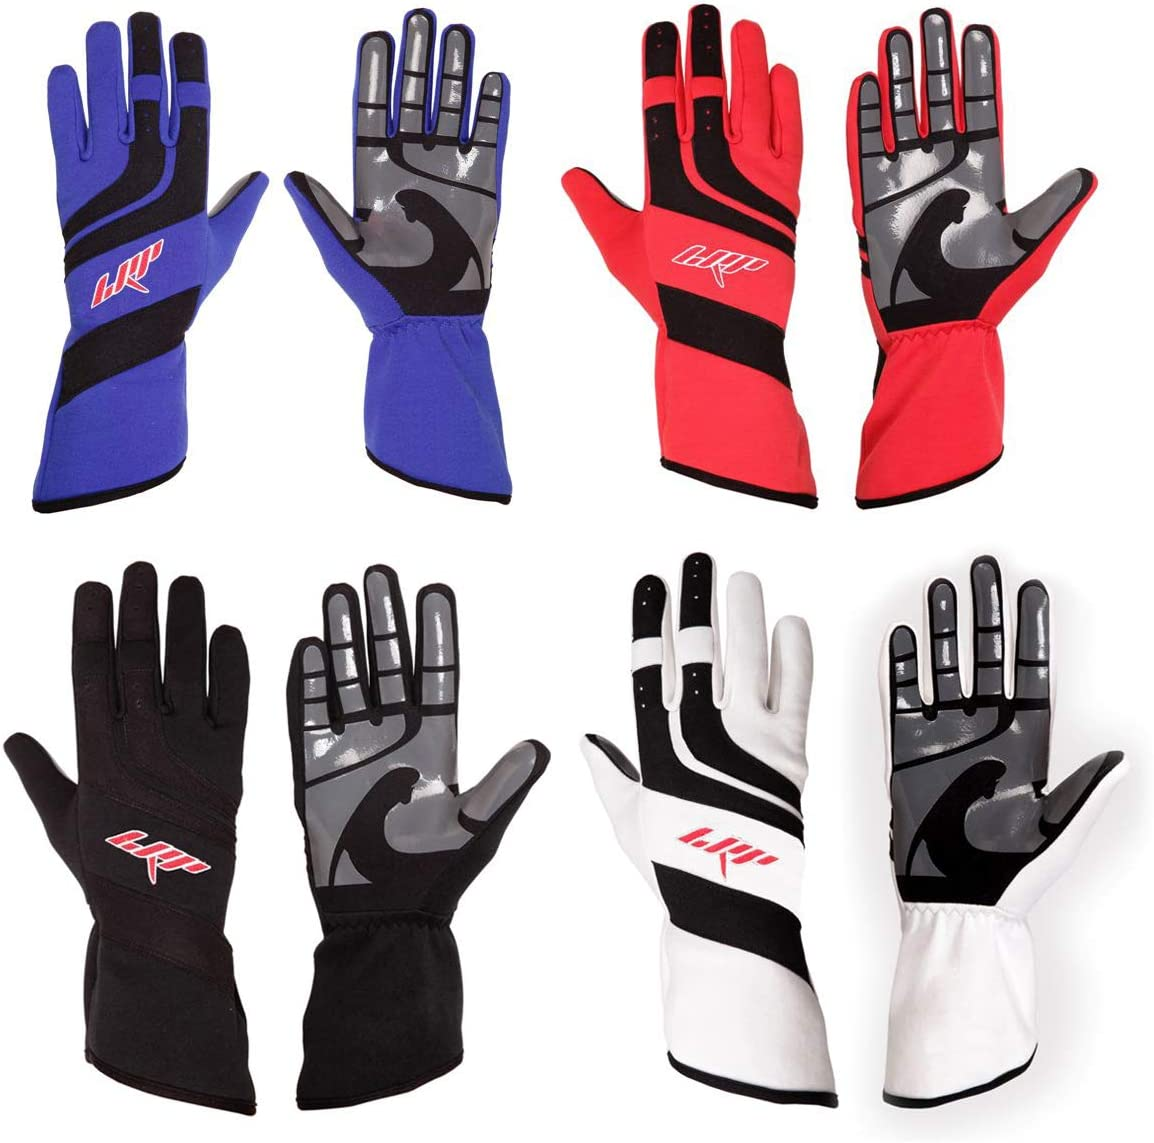 Speed Gloves LRP Kart Racing Gloves Highest protection